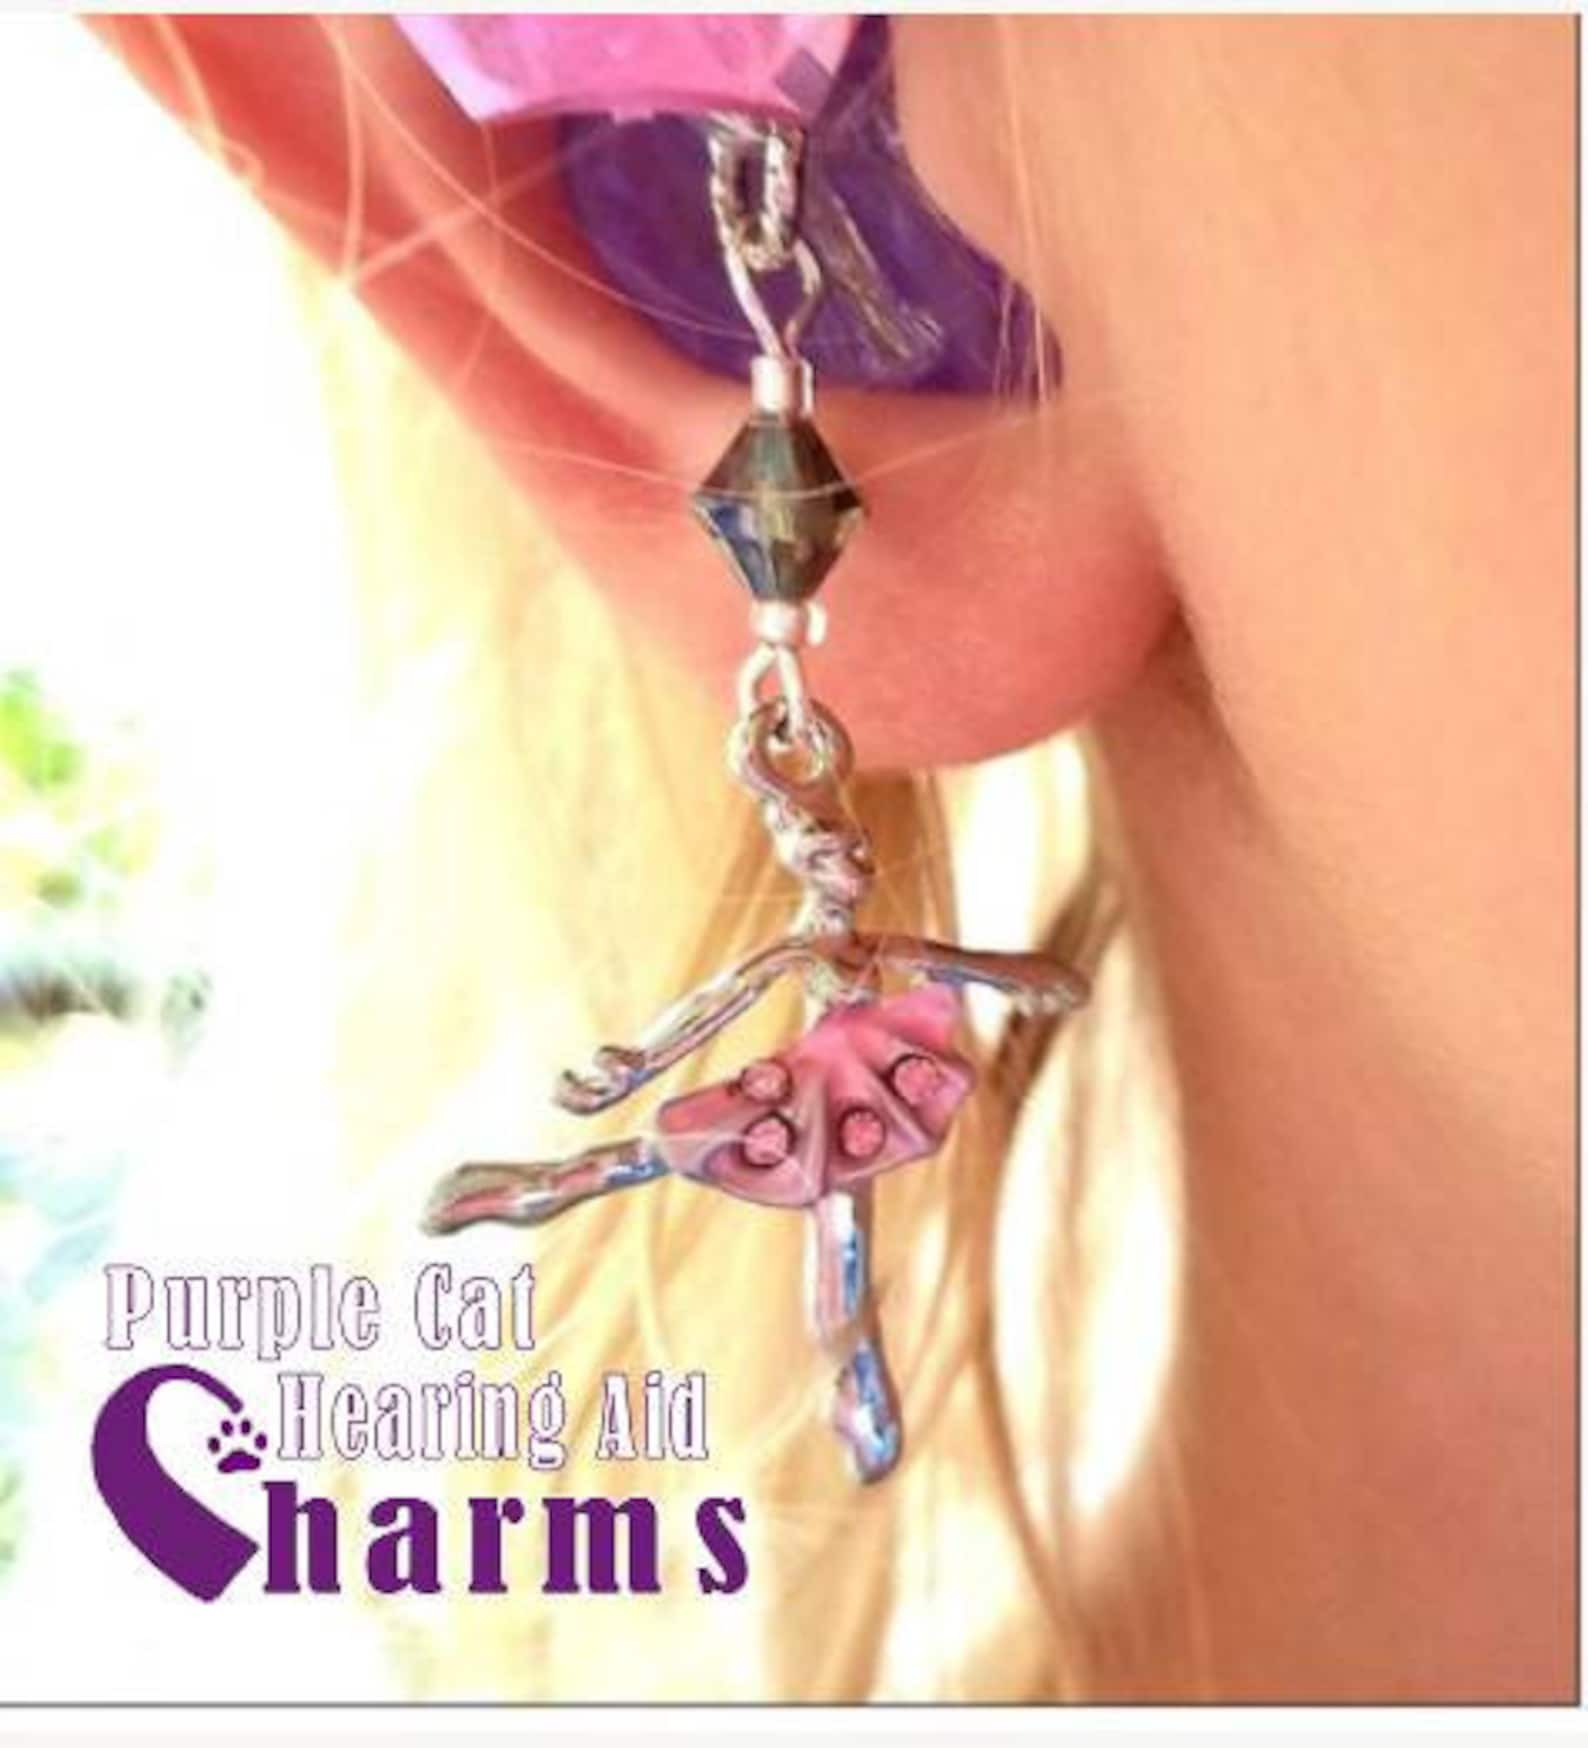 hearing aid charms: charming ballet slippers or beautiful ballerinas with czech glass accent beads!